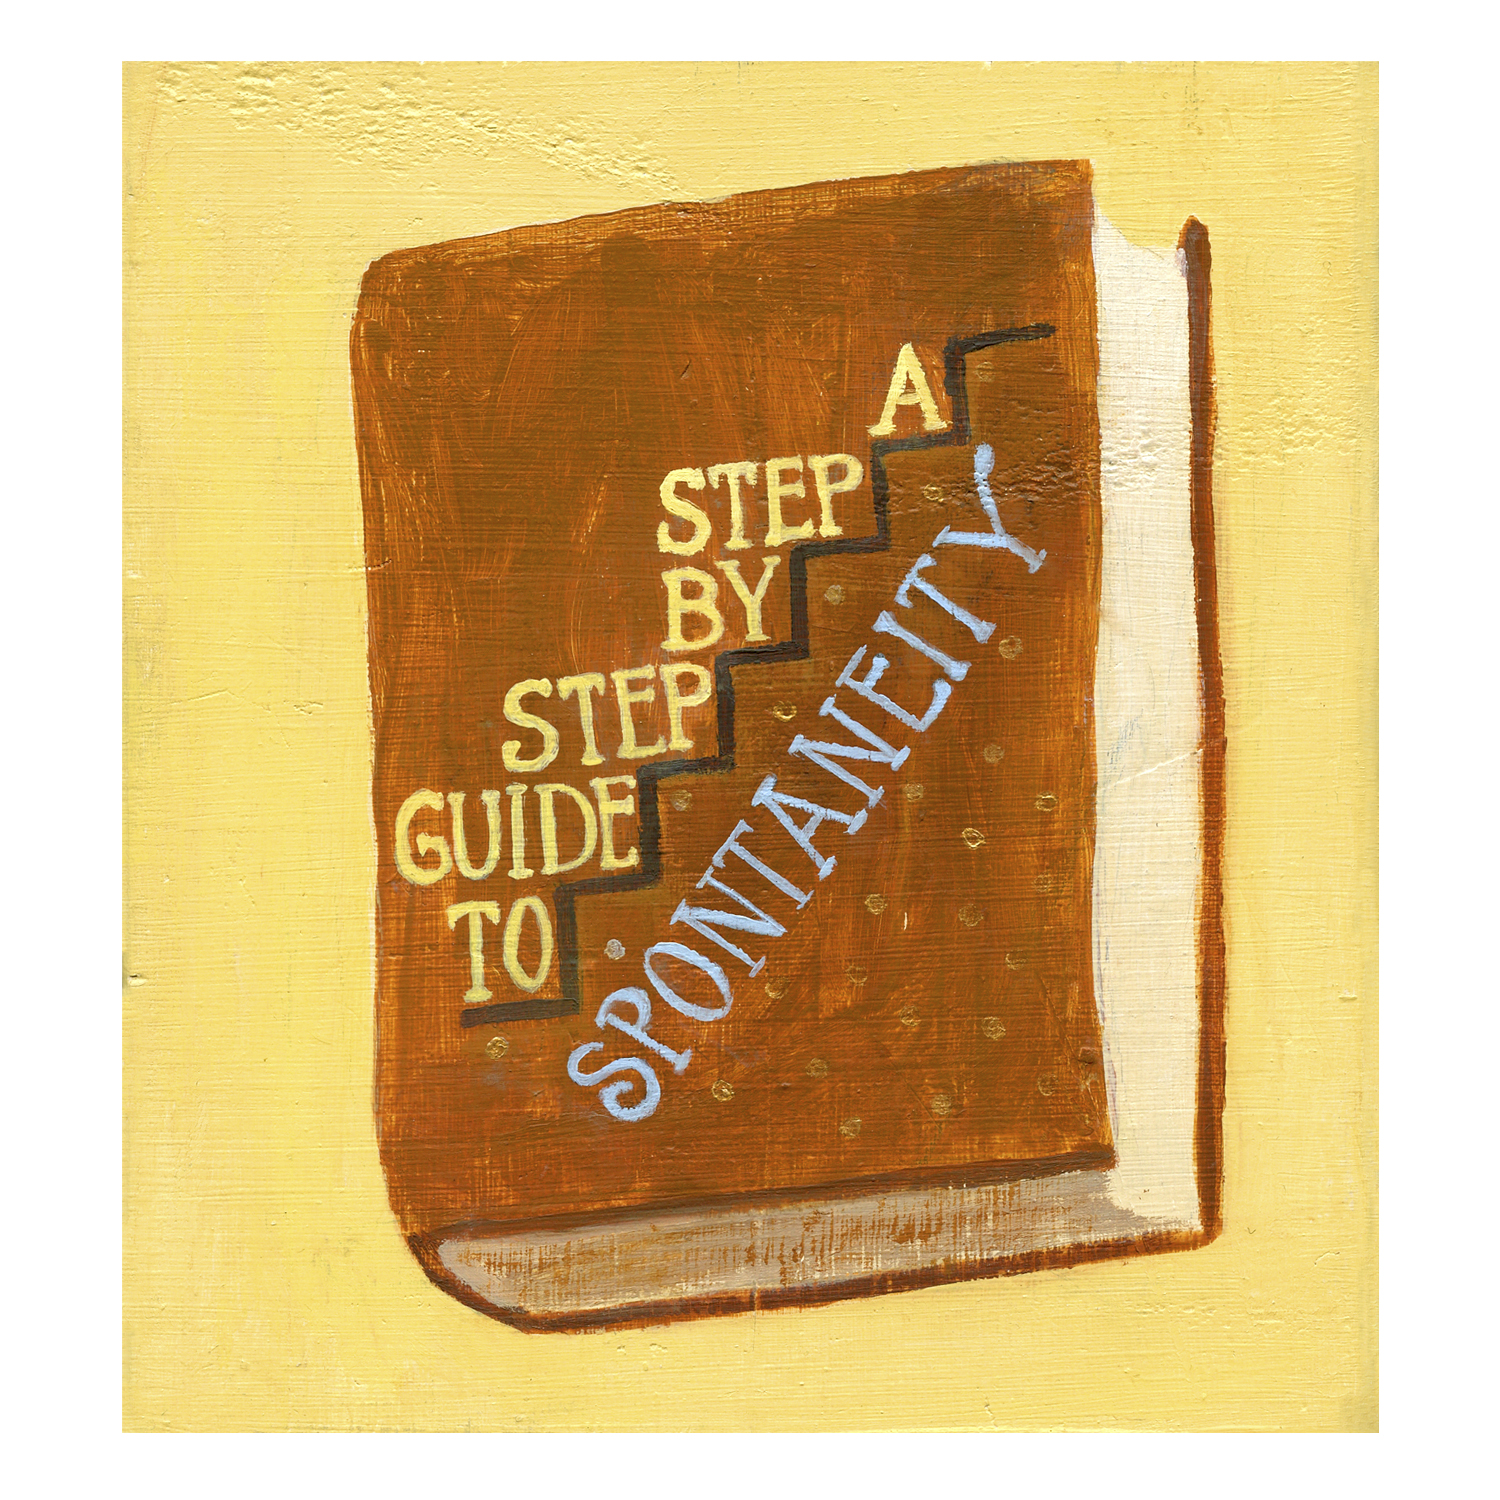 A Step by Step Guide to Spontaneity